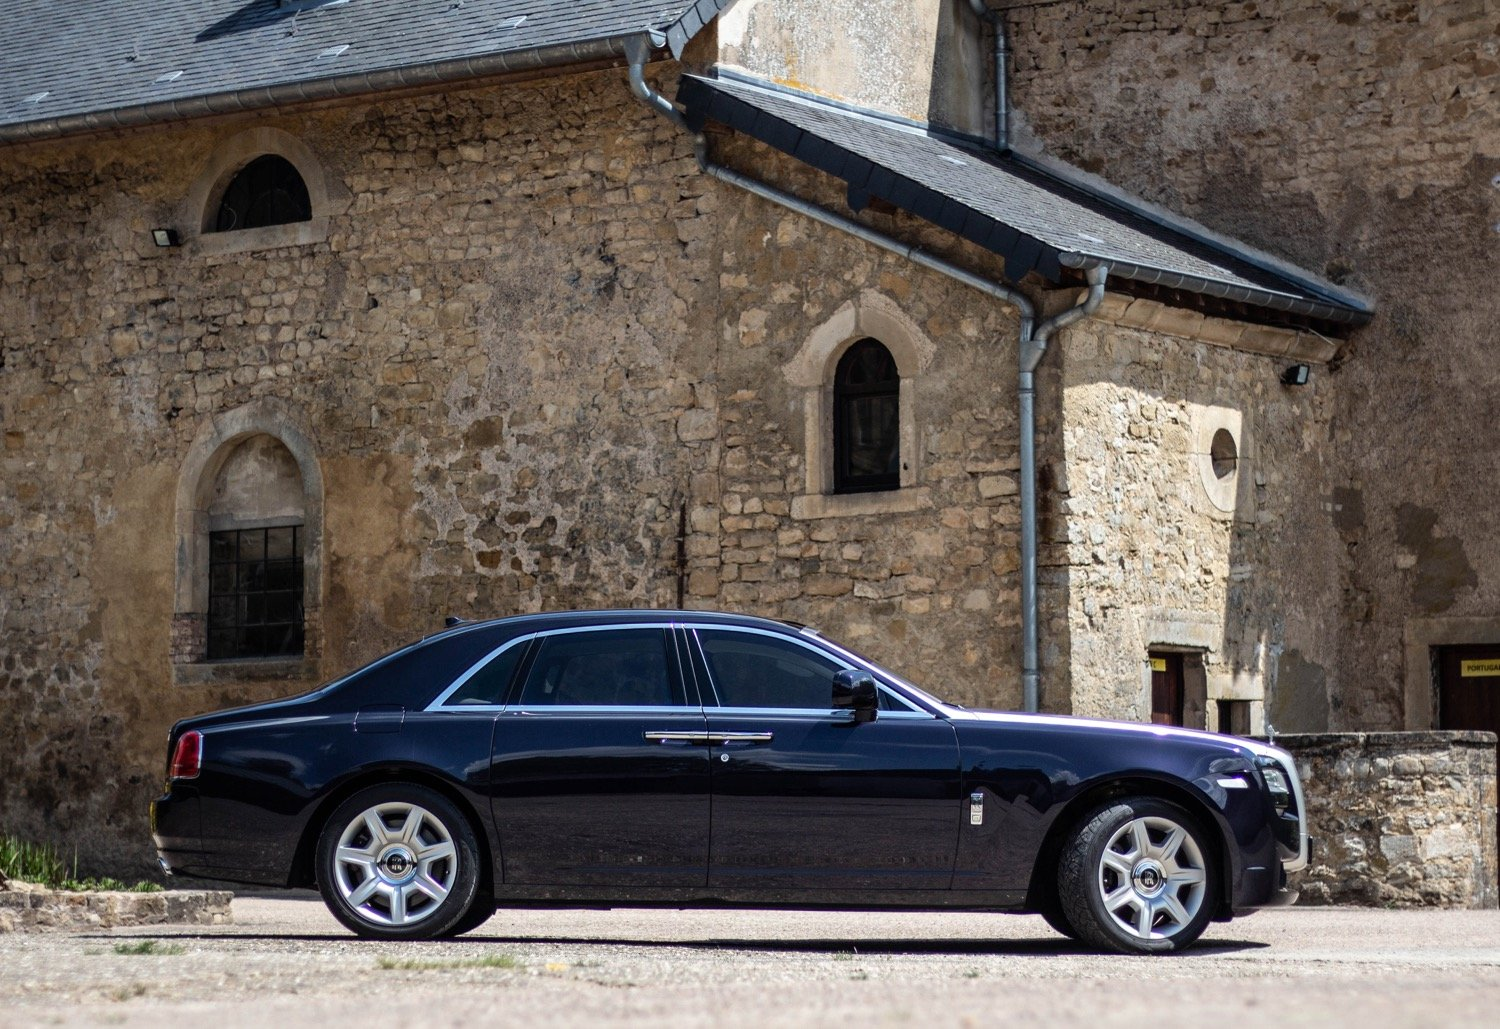 Majestic - Emily - Rolls Royce Ghost - Ansembourg Castle